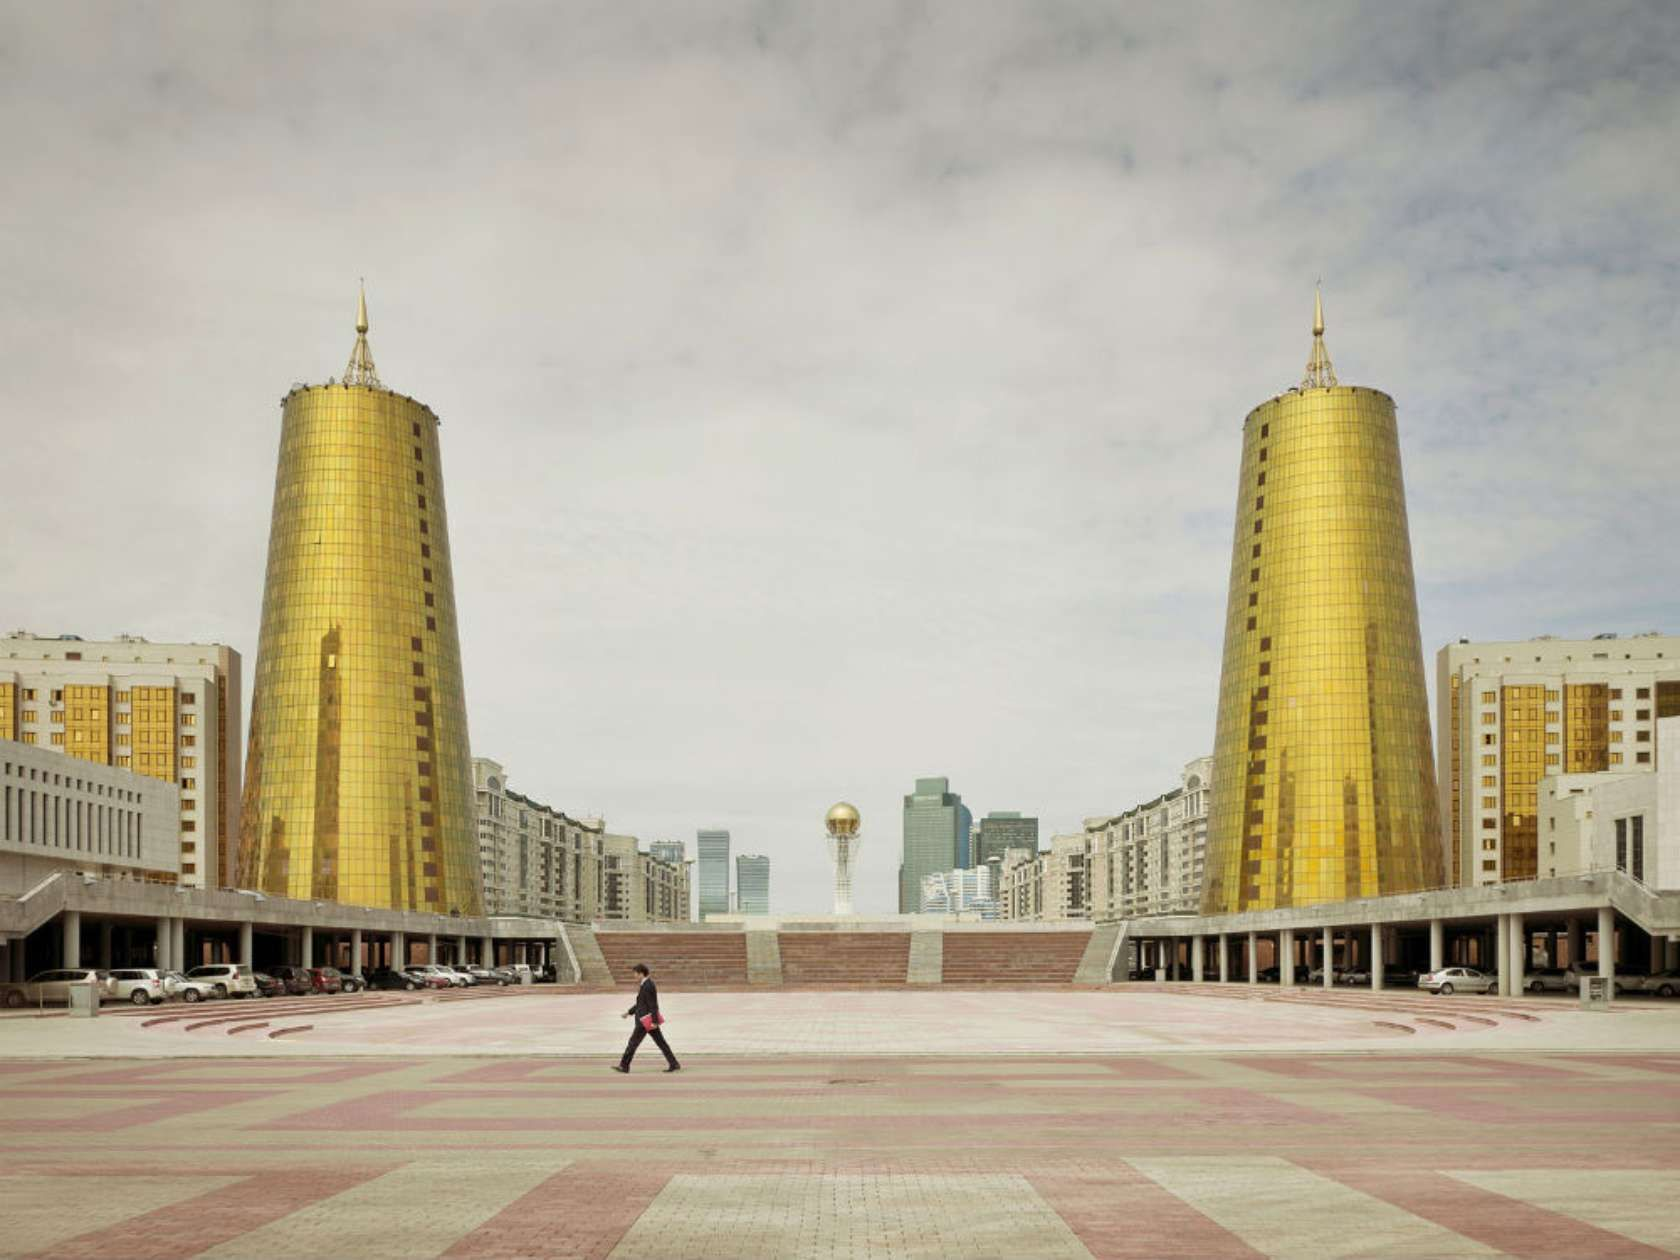 Futuristic buildings of the late USSR